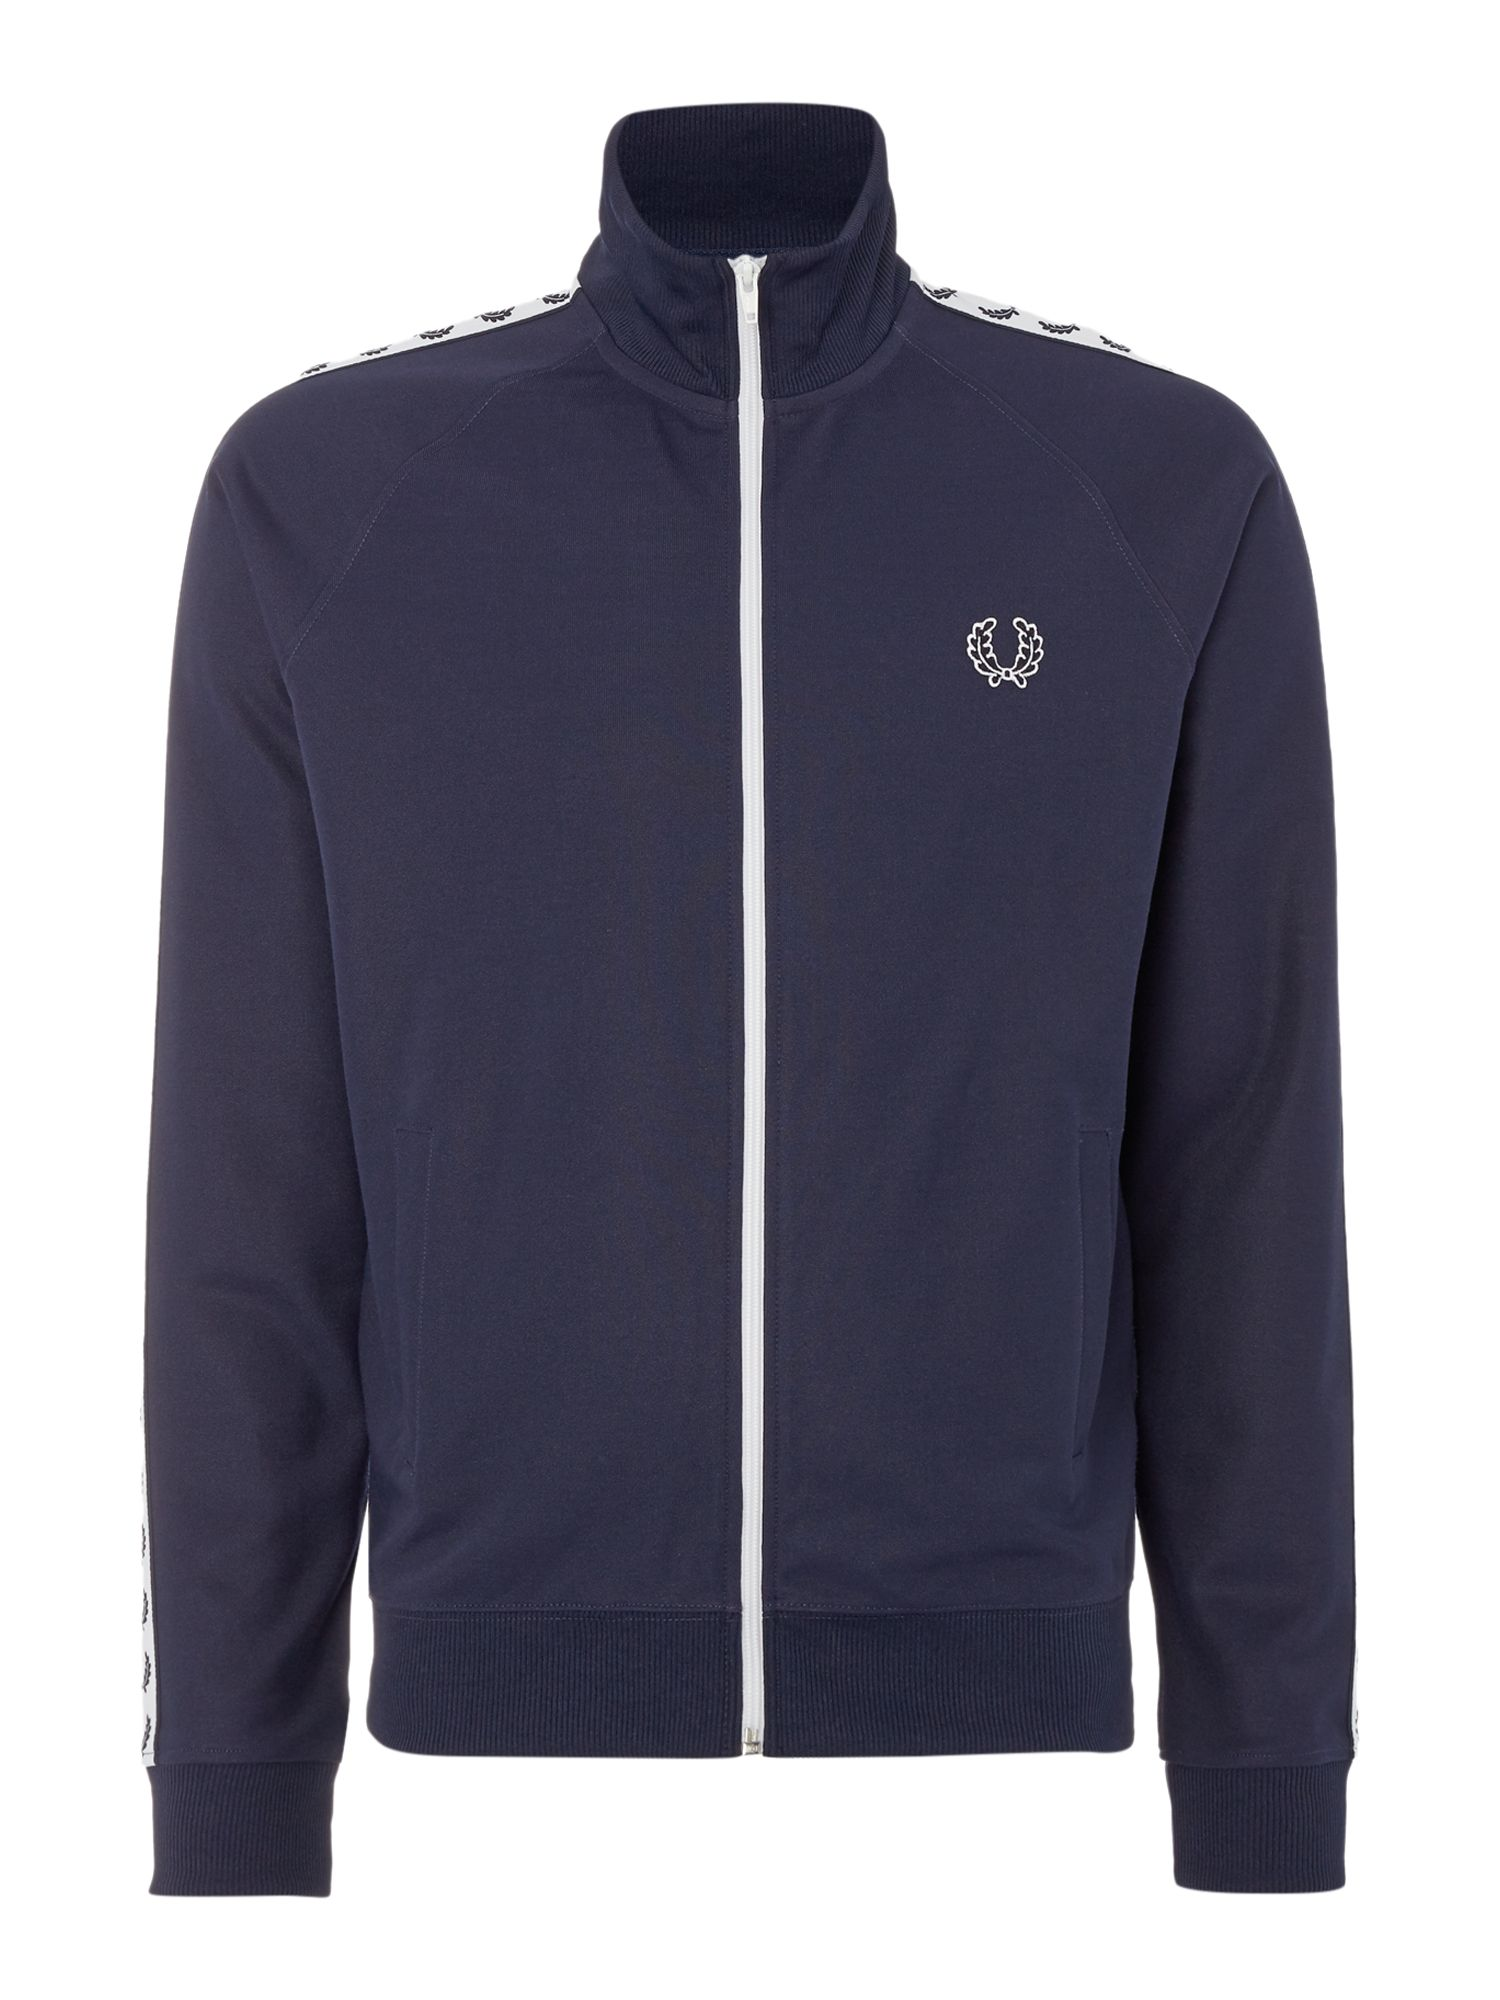 Men's Fred Perry Plain Funnel Neck Tracksuit, Midnight Blue